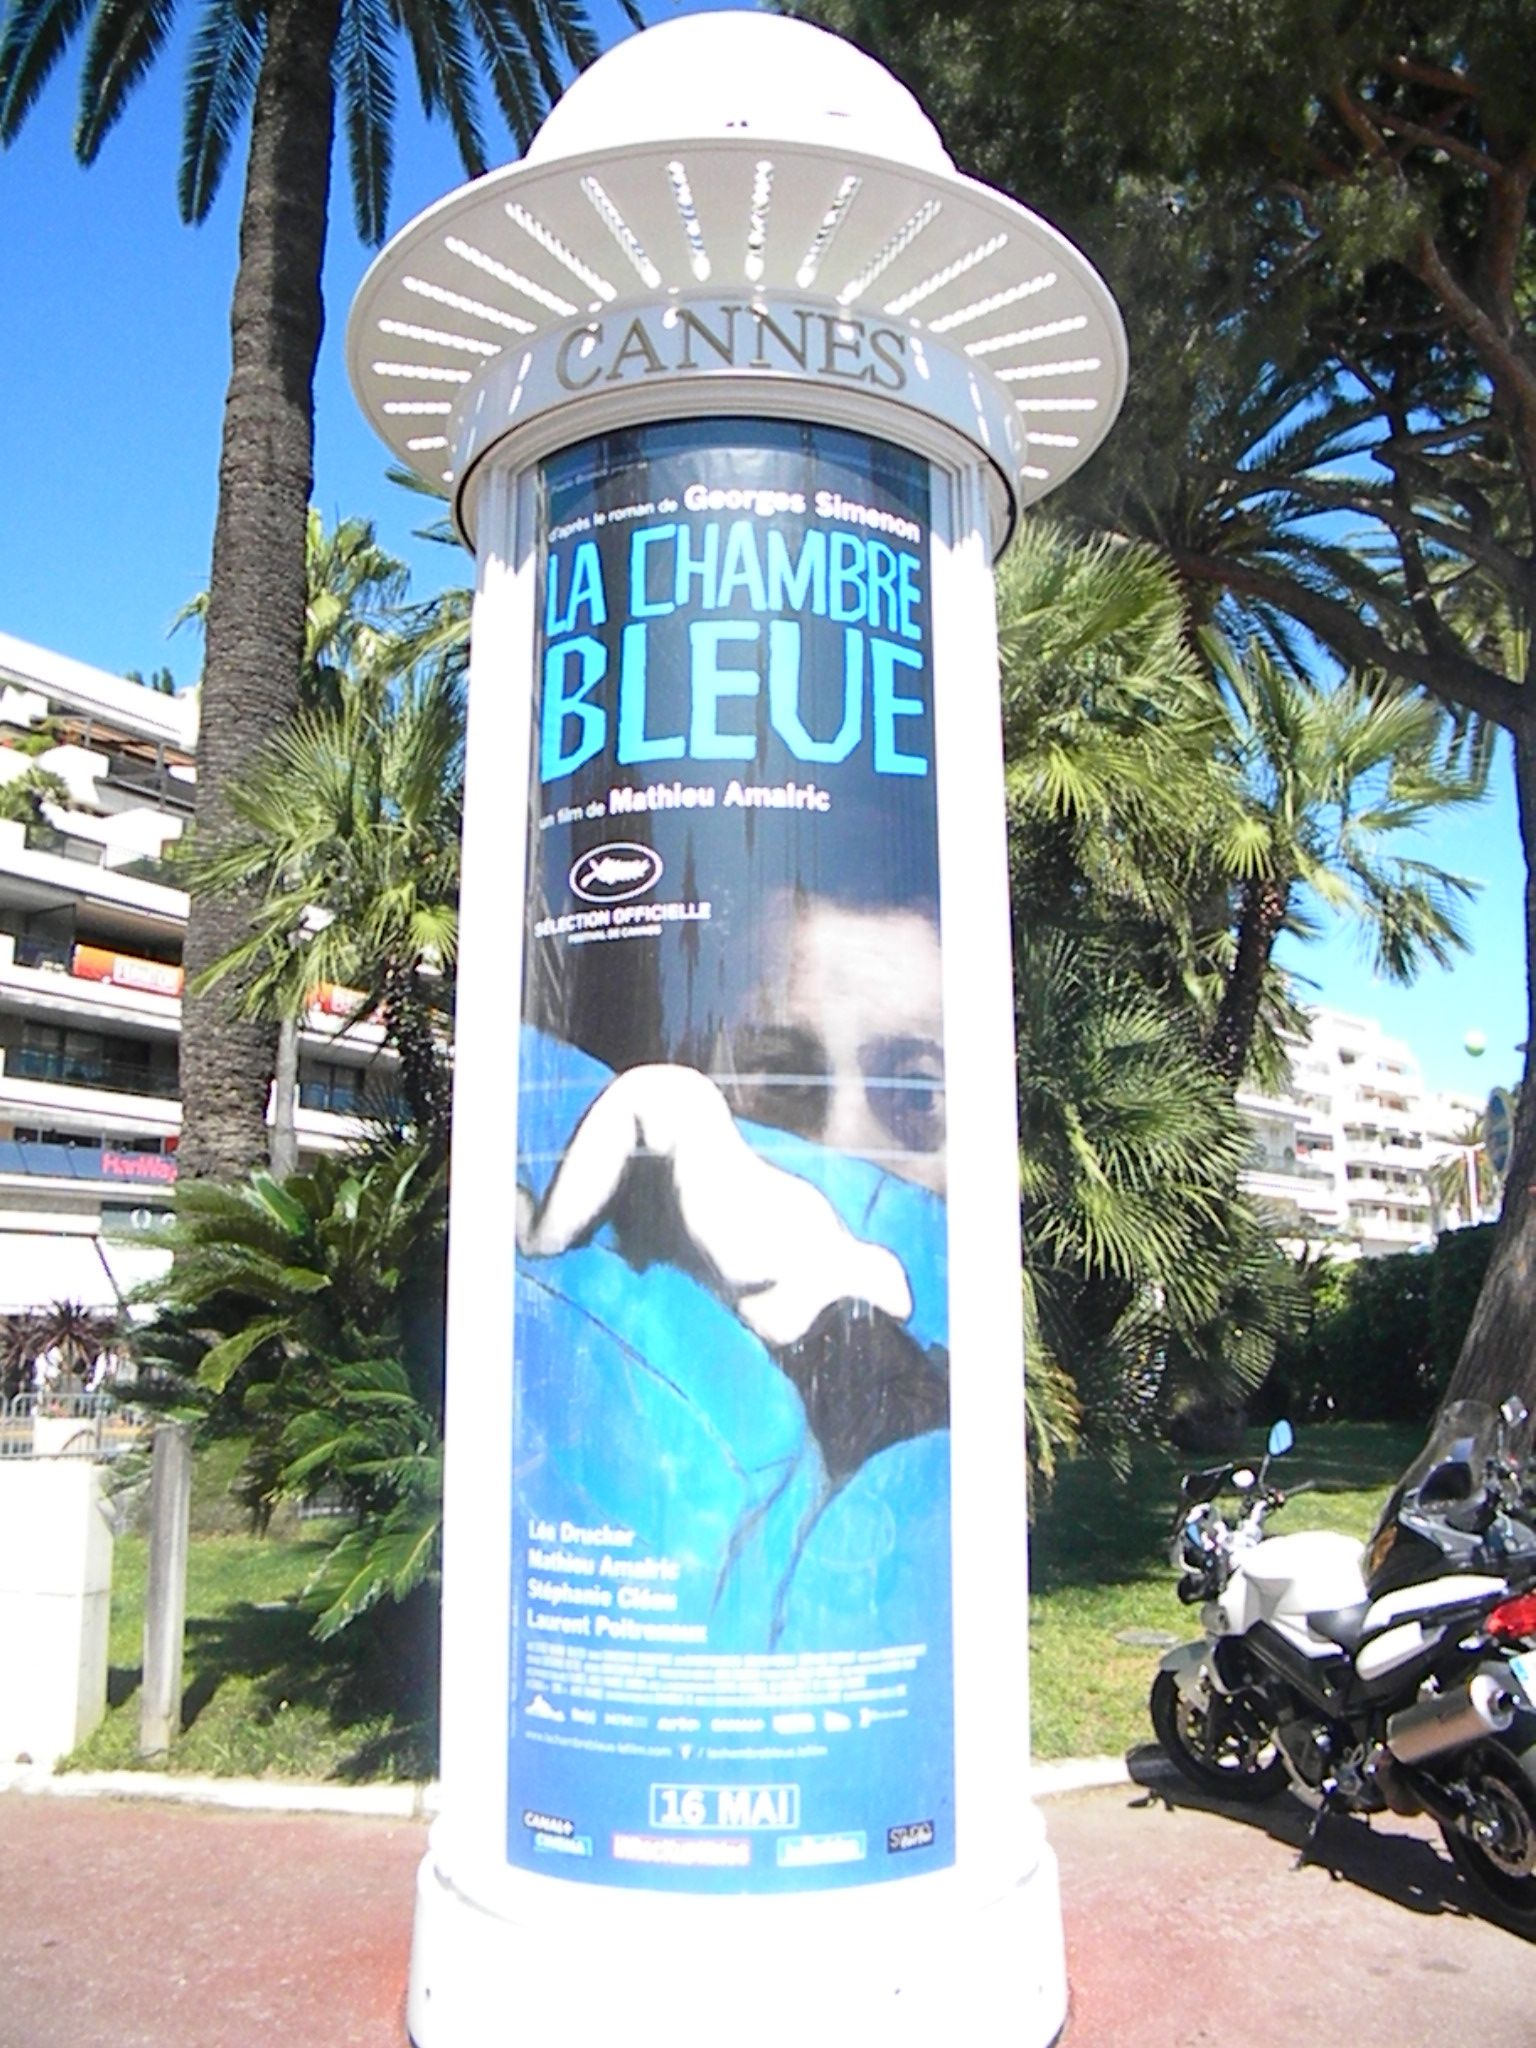 Cannes posters transformers 4 the expendables 3 poster for Chambre bleue film